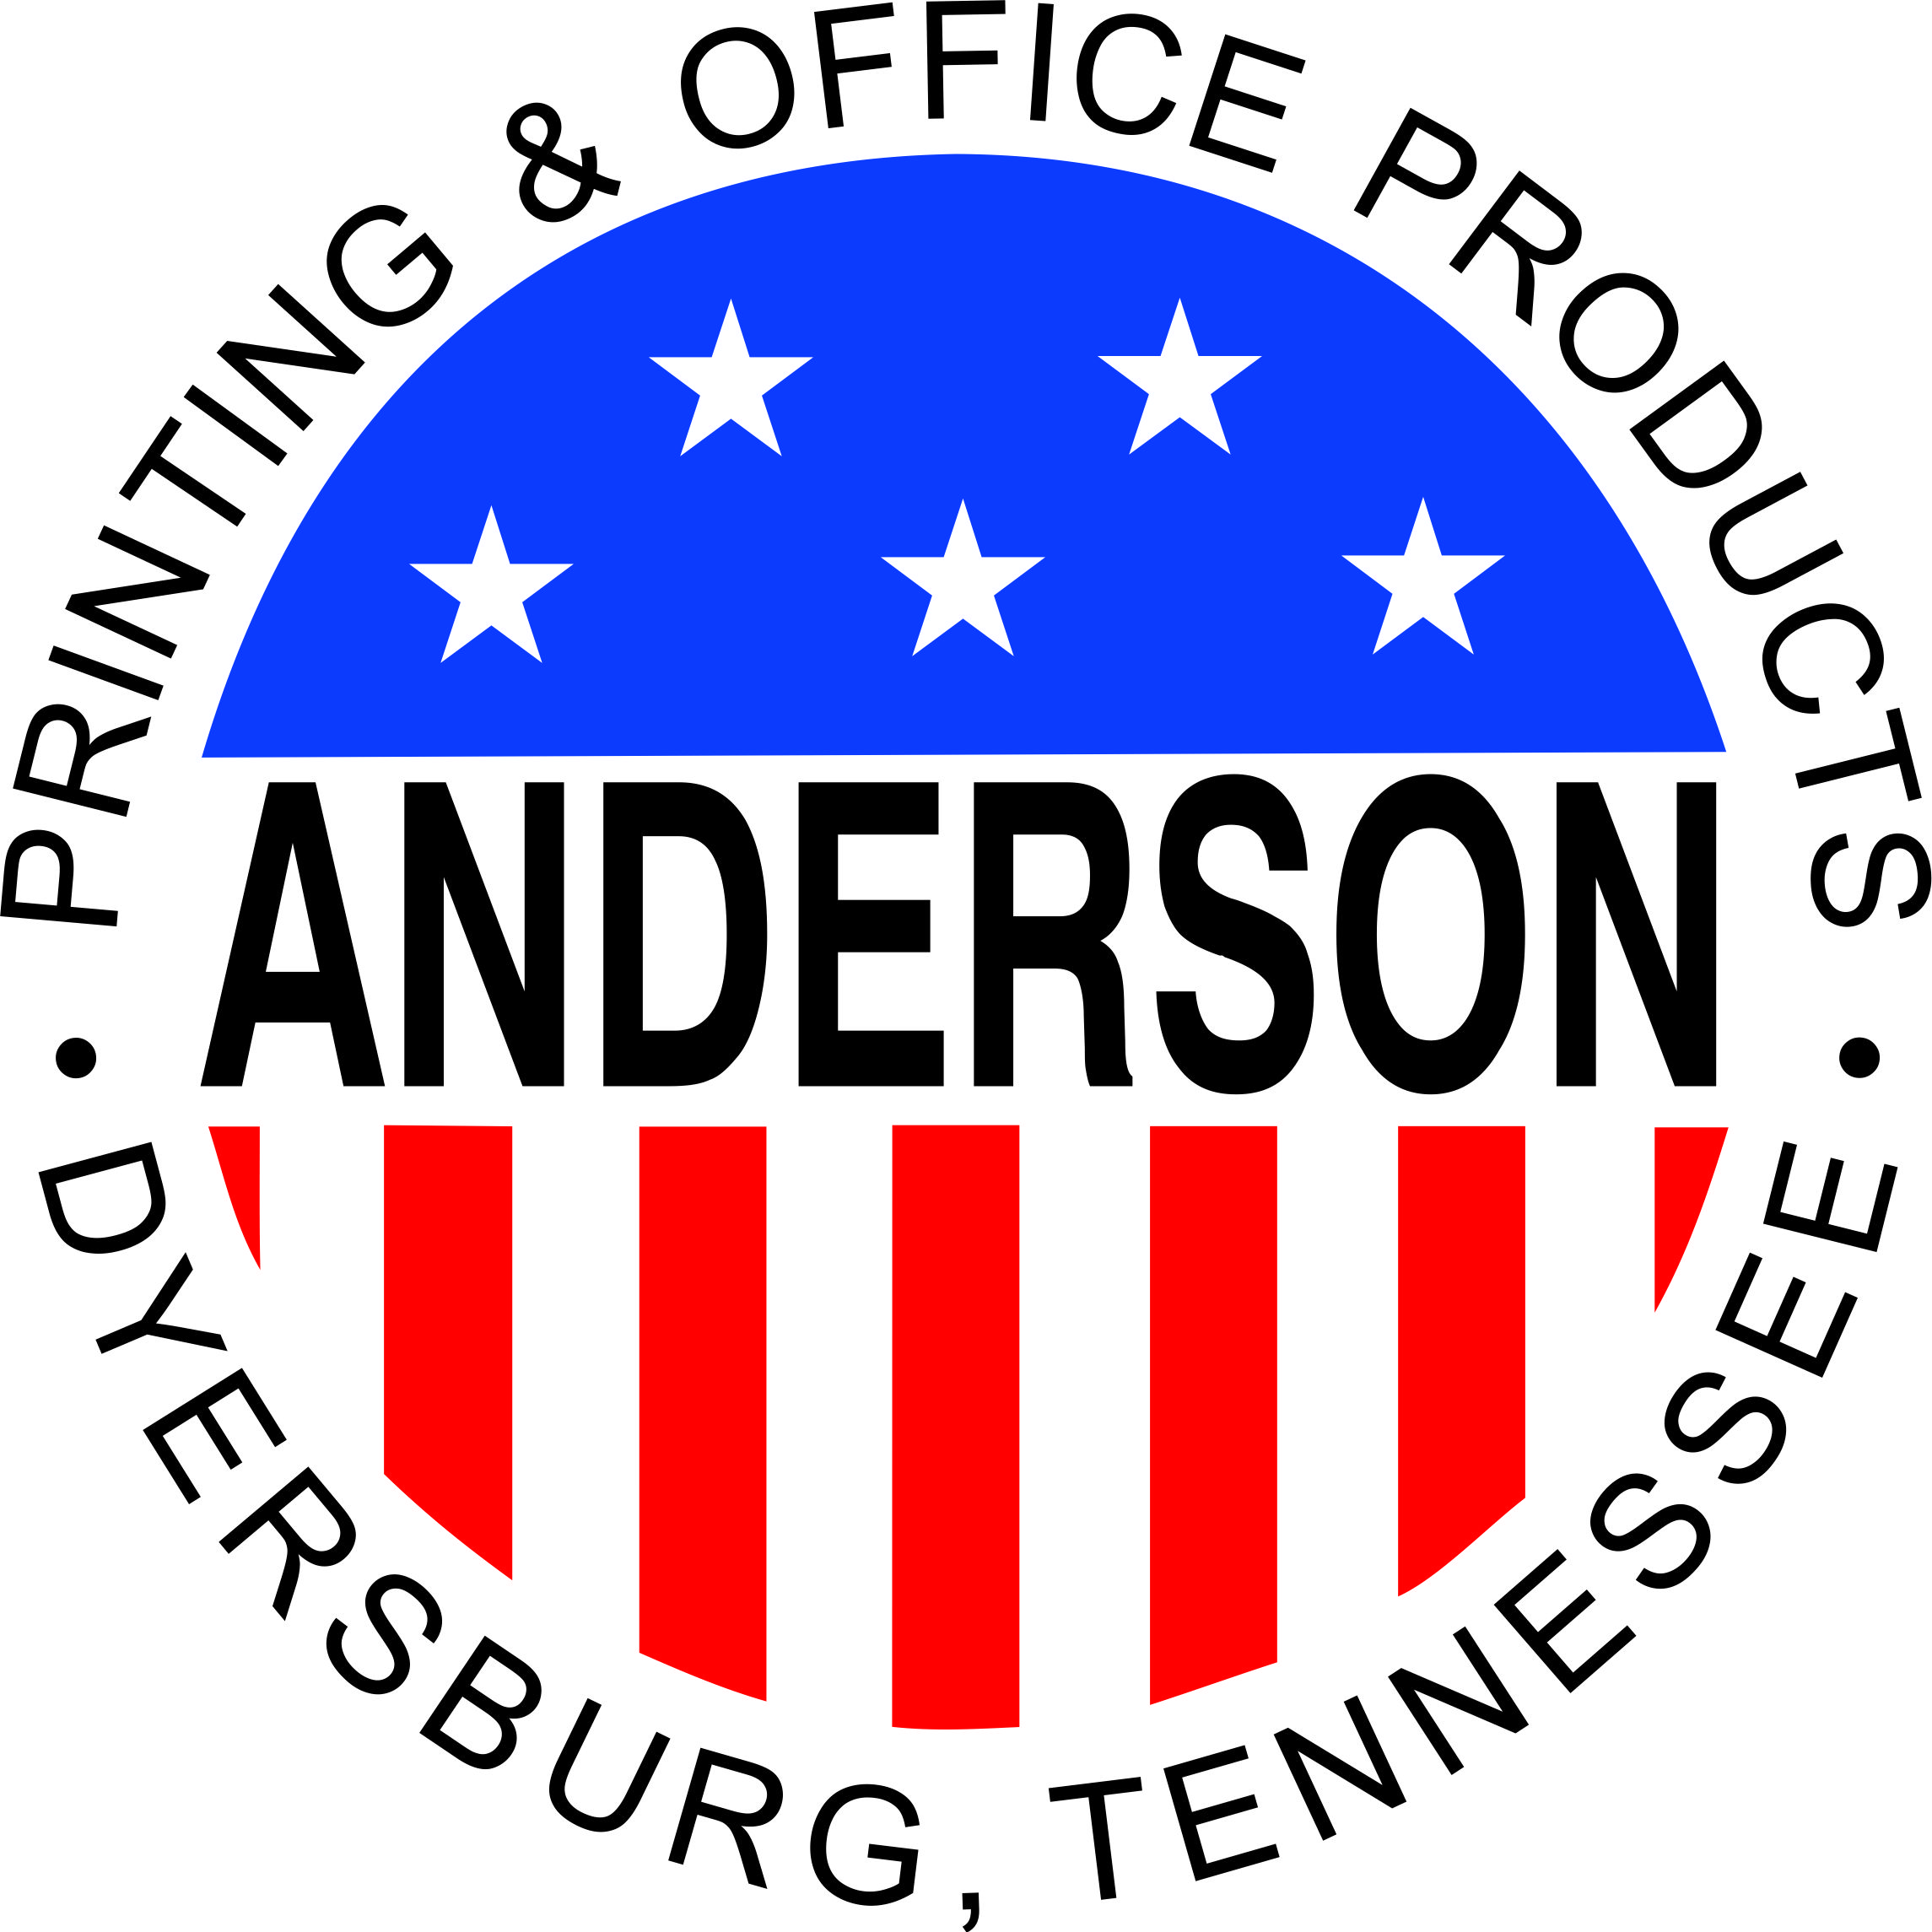 Anderson Printing & Office Products